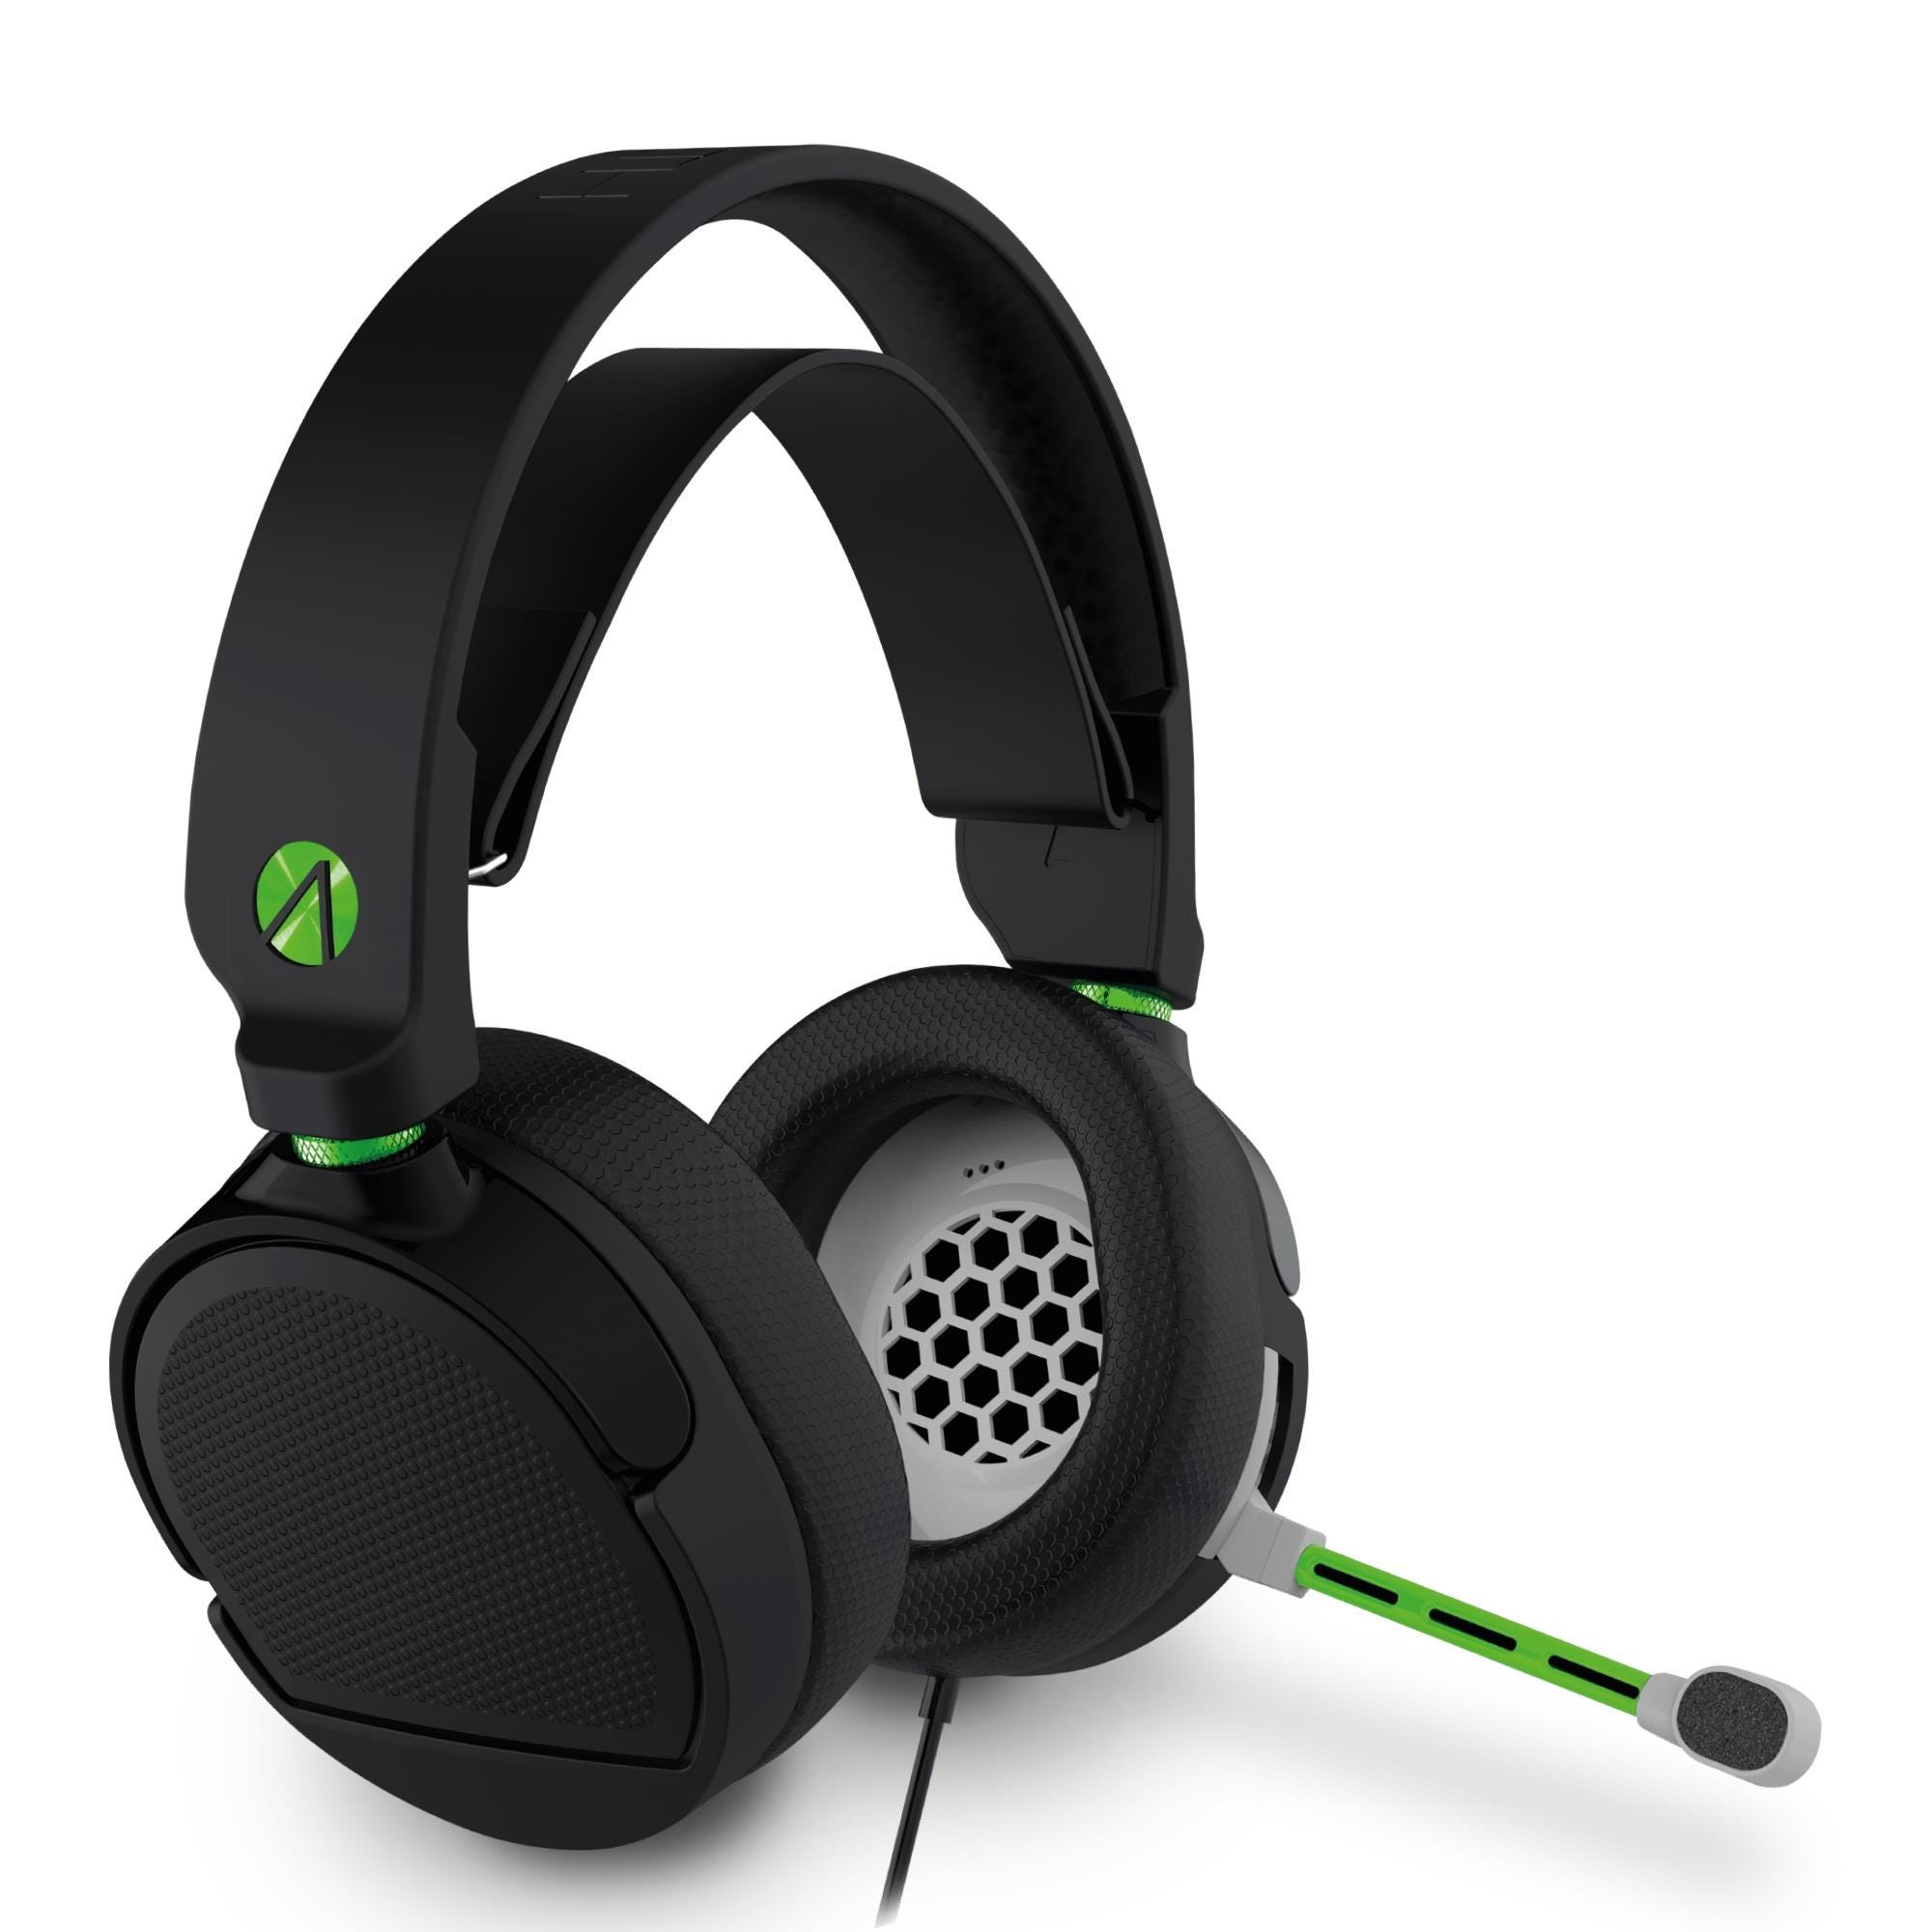 Stealth Shadow X Premium Stereo Gaming Headset - Black and Green